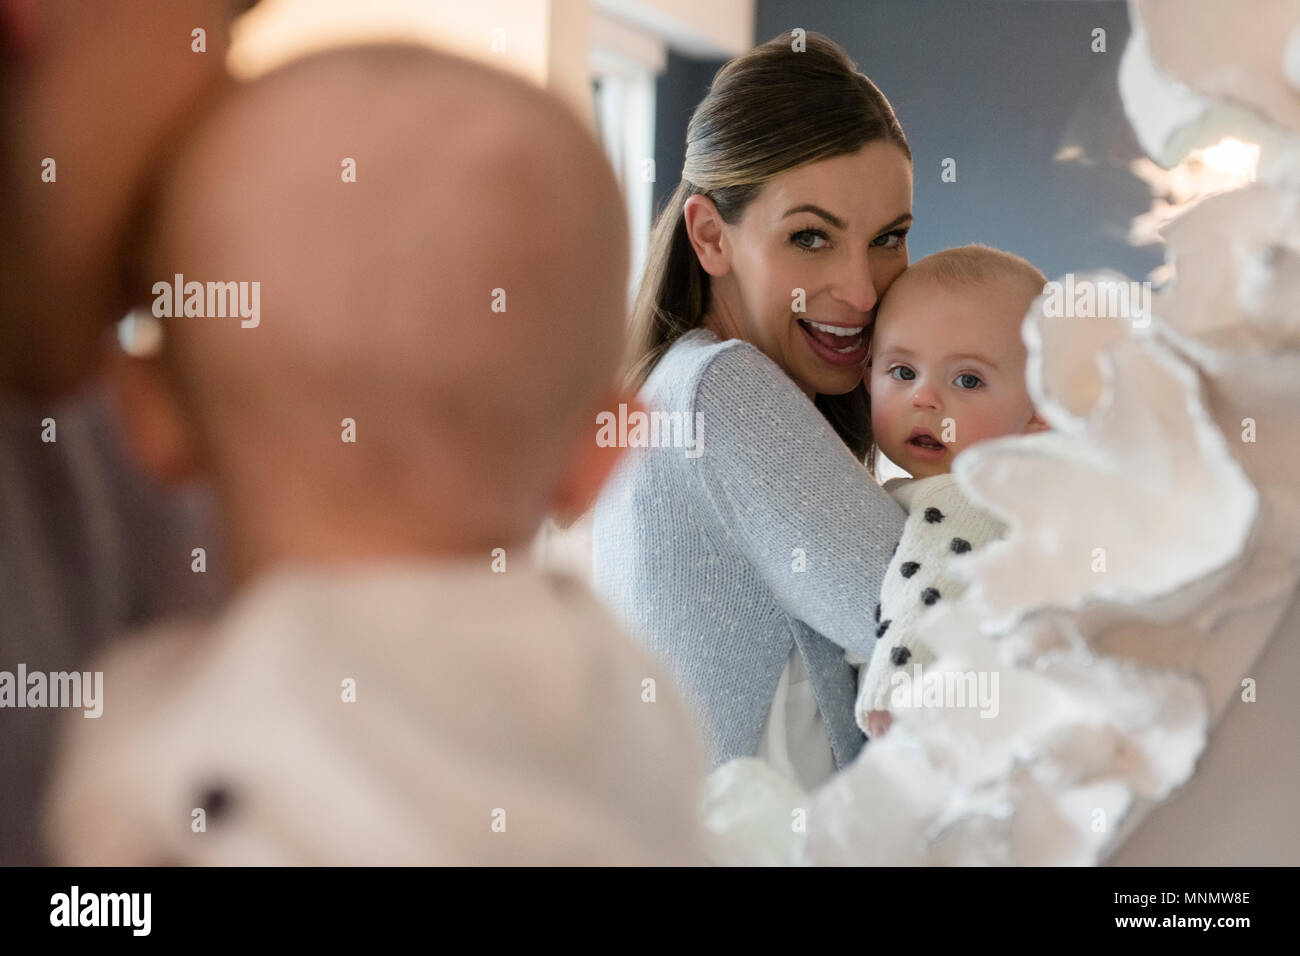 Mother holding baby (18-23 months) in front of mirror - Stock Image